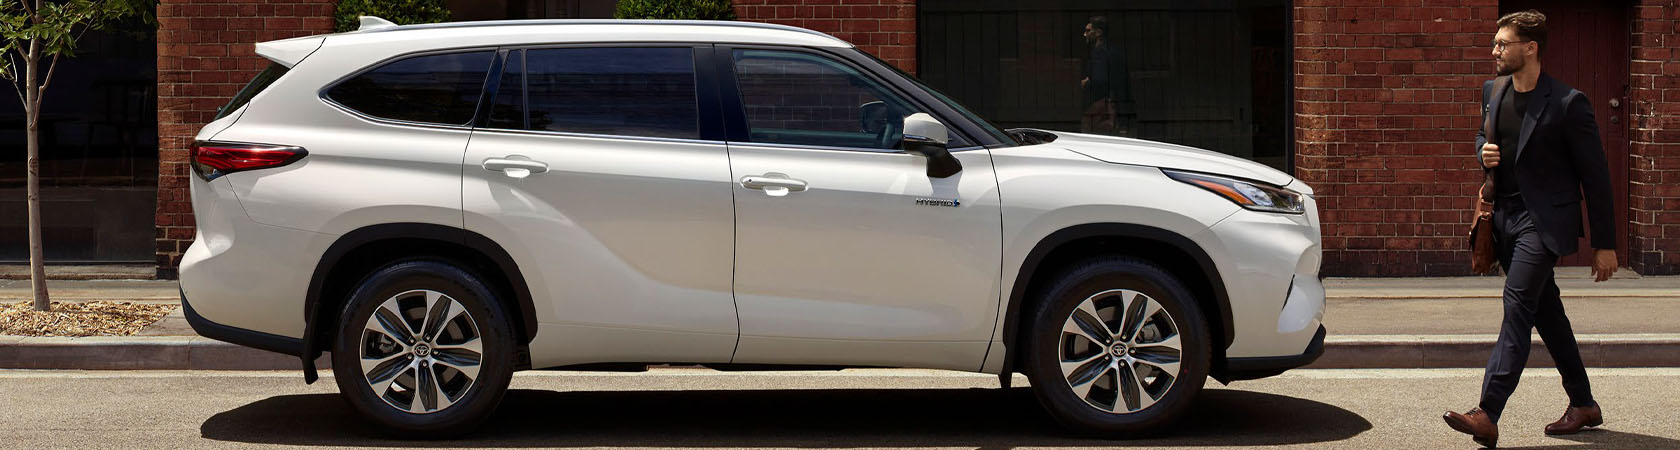 Warrnambool Toyota Kluger